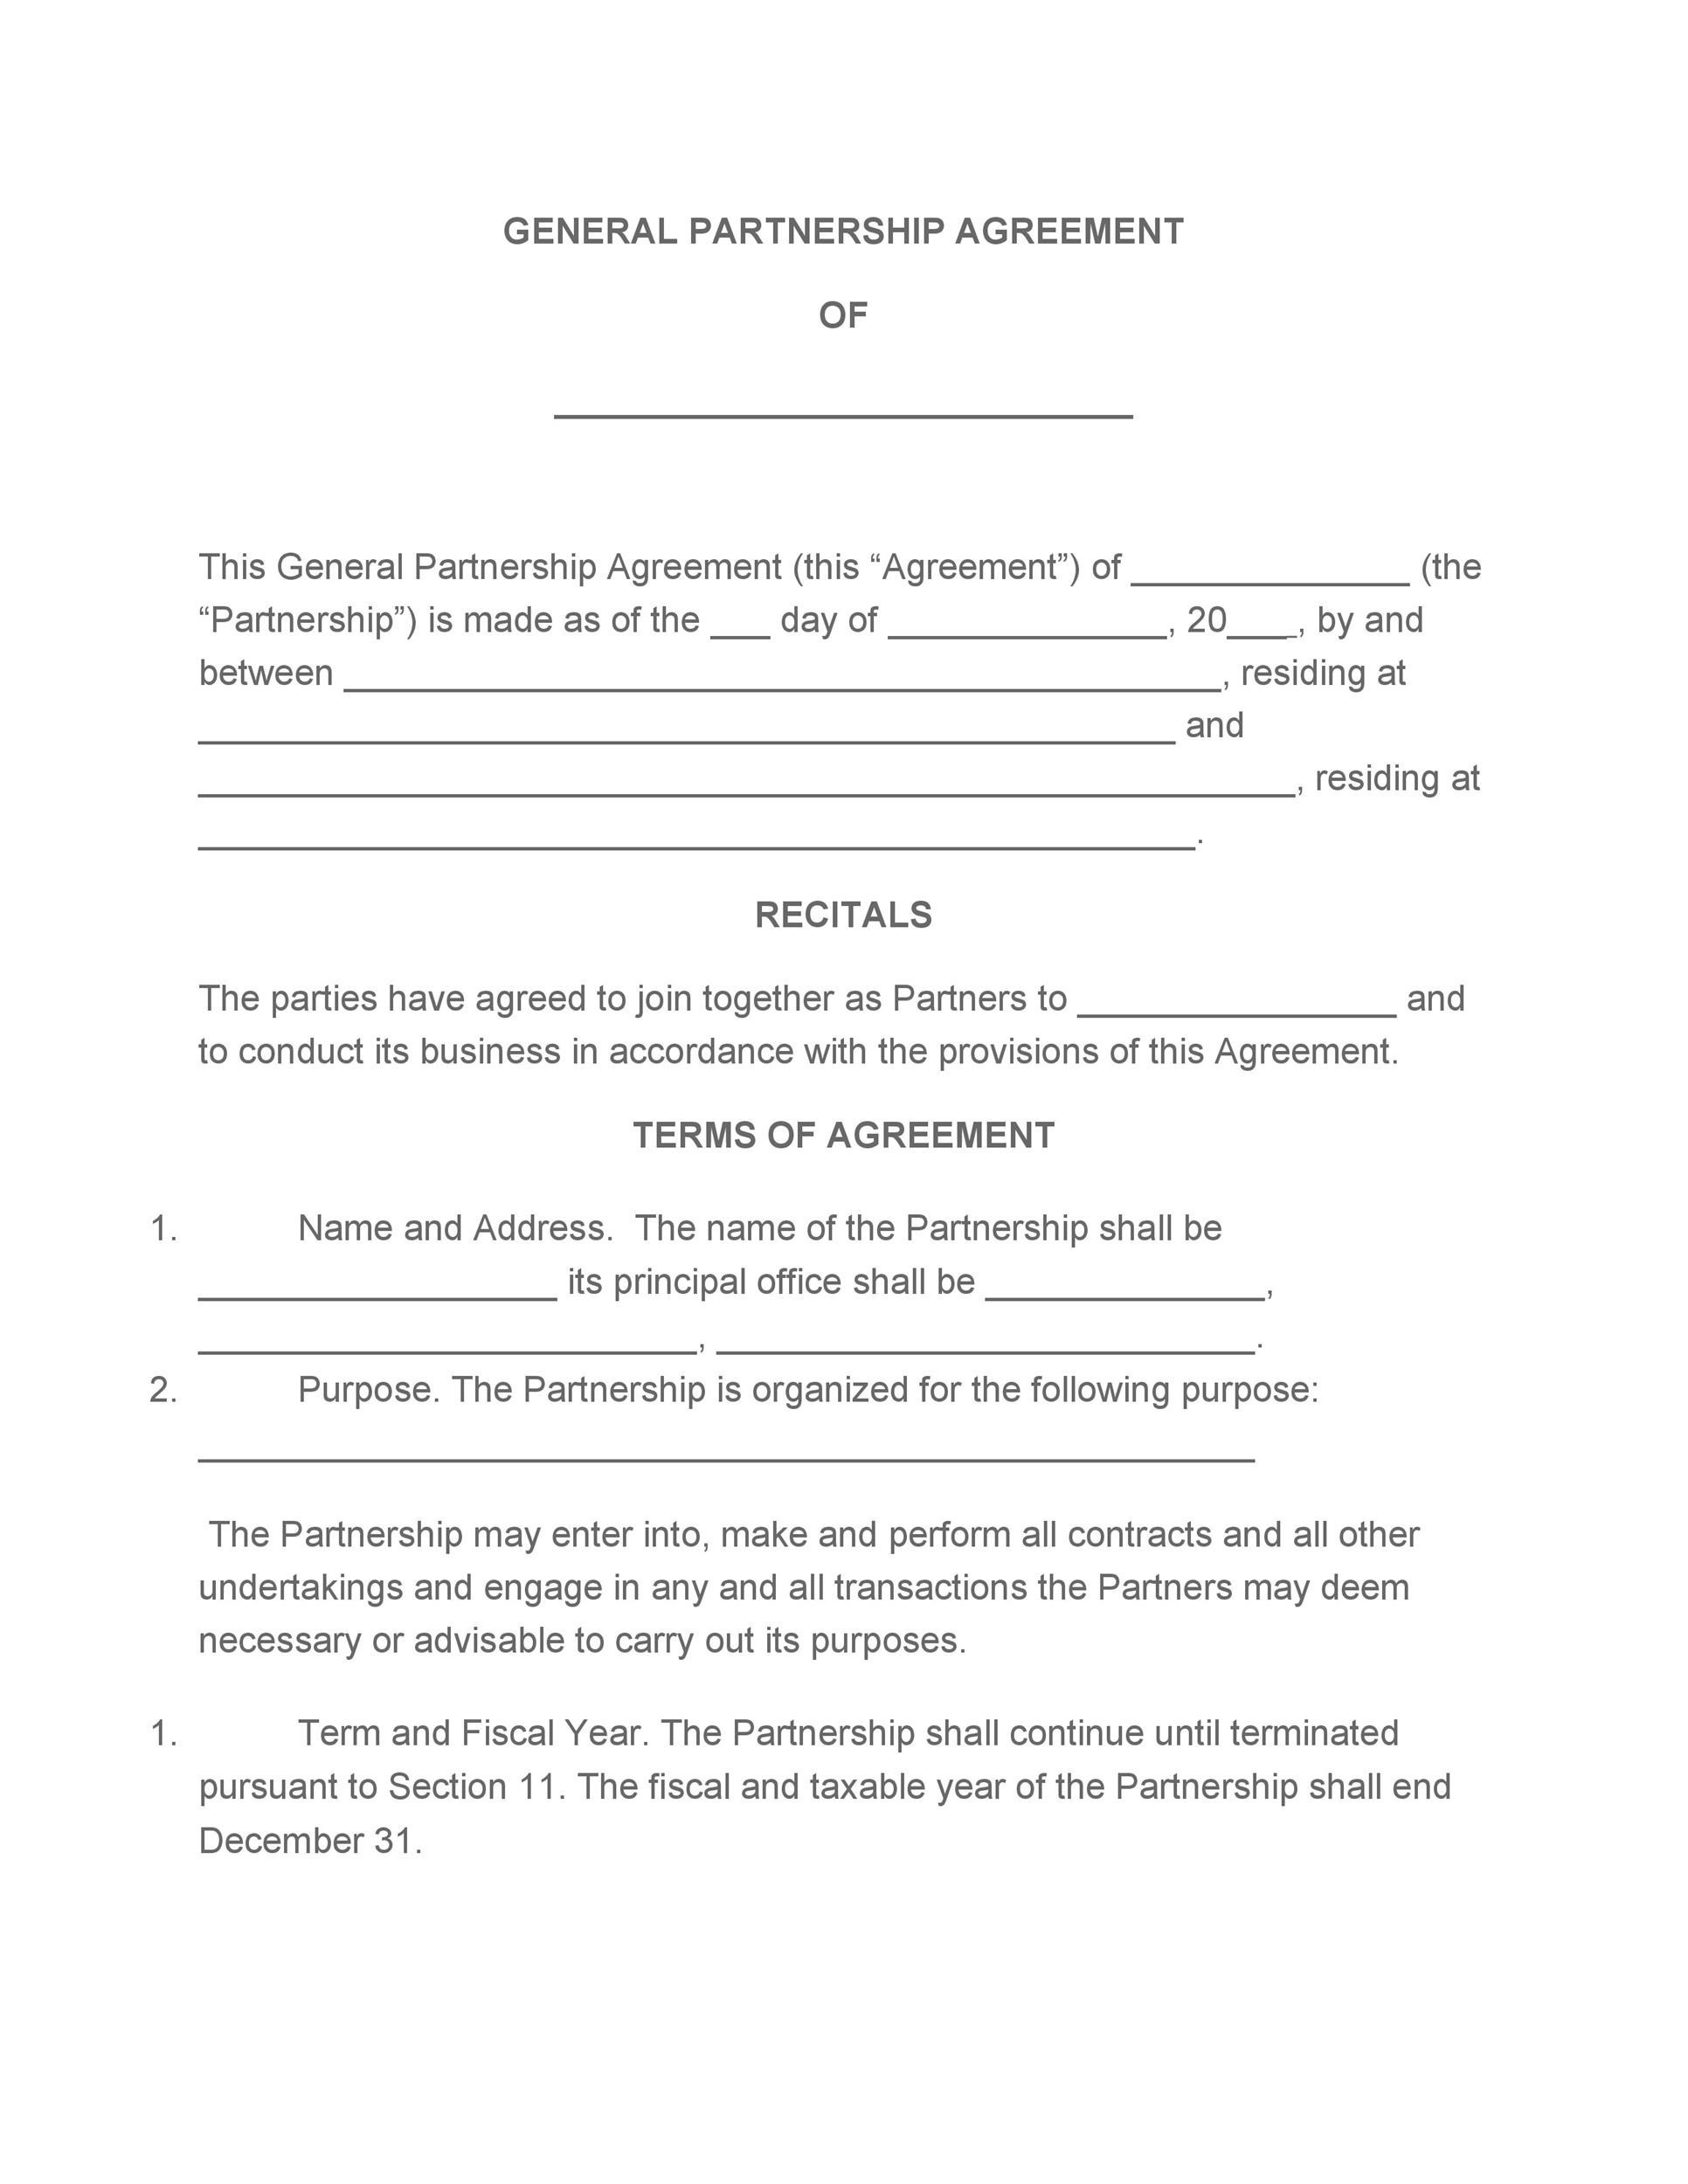 40+ FREE Partnership Agreement Templates (Business, General)